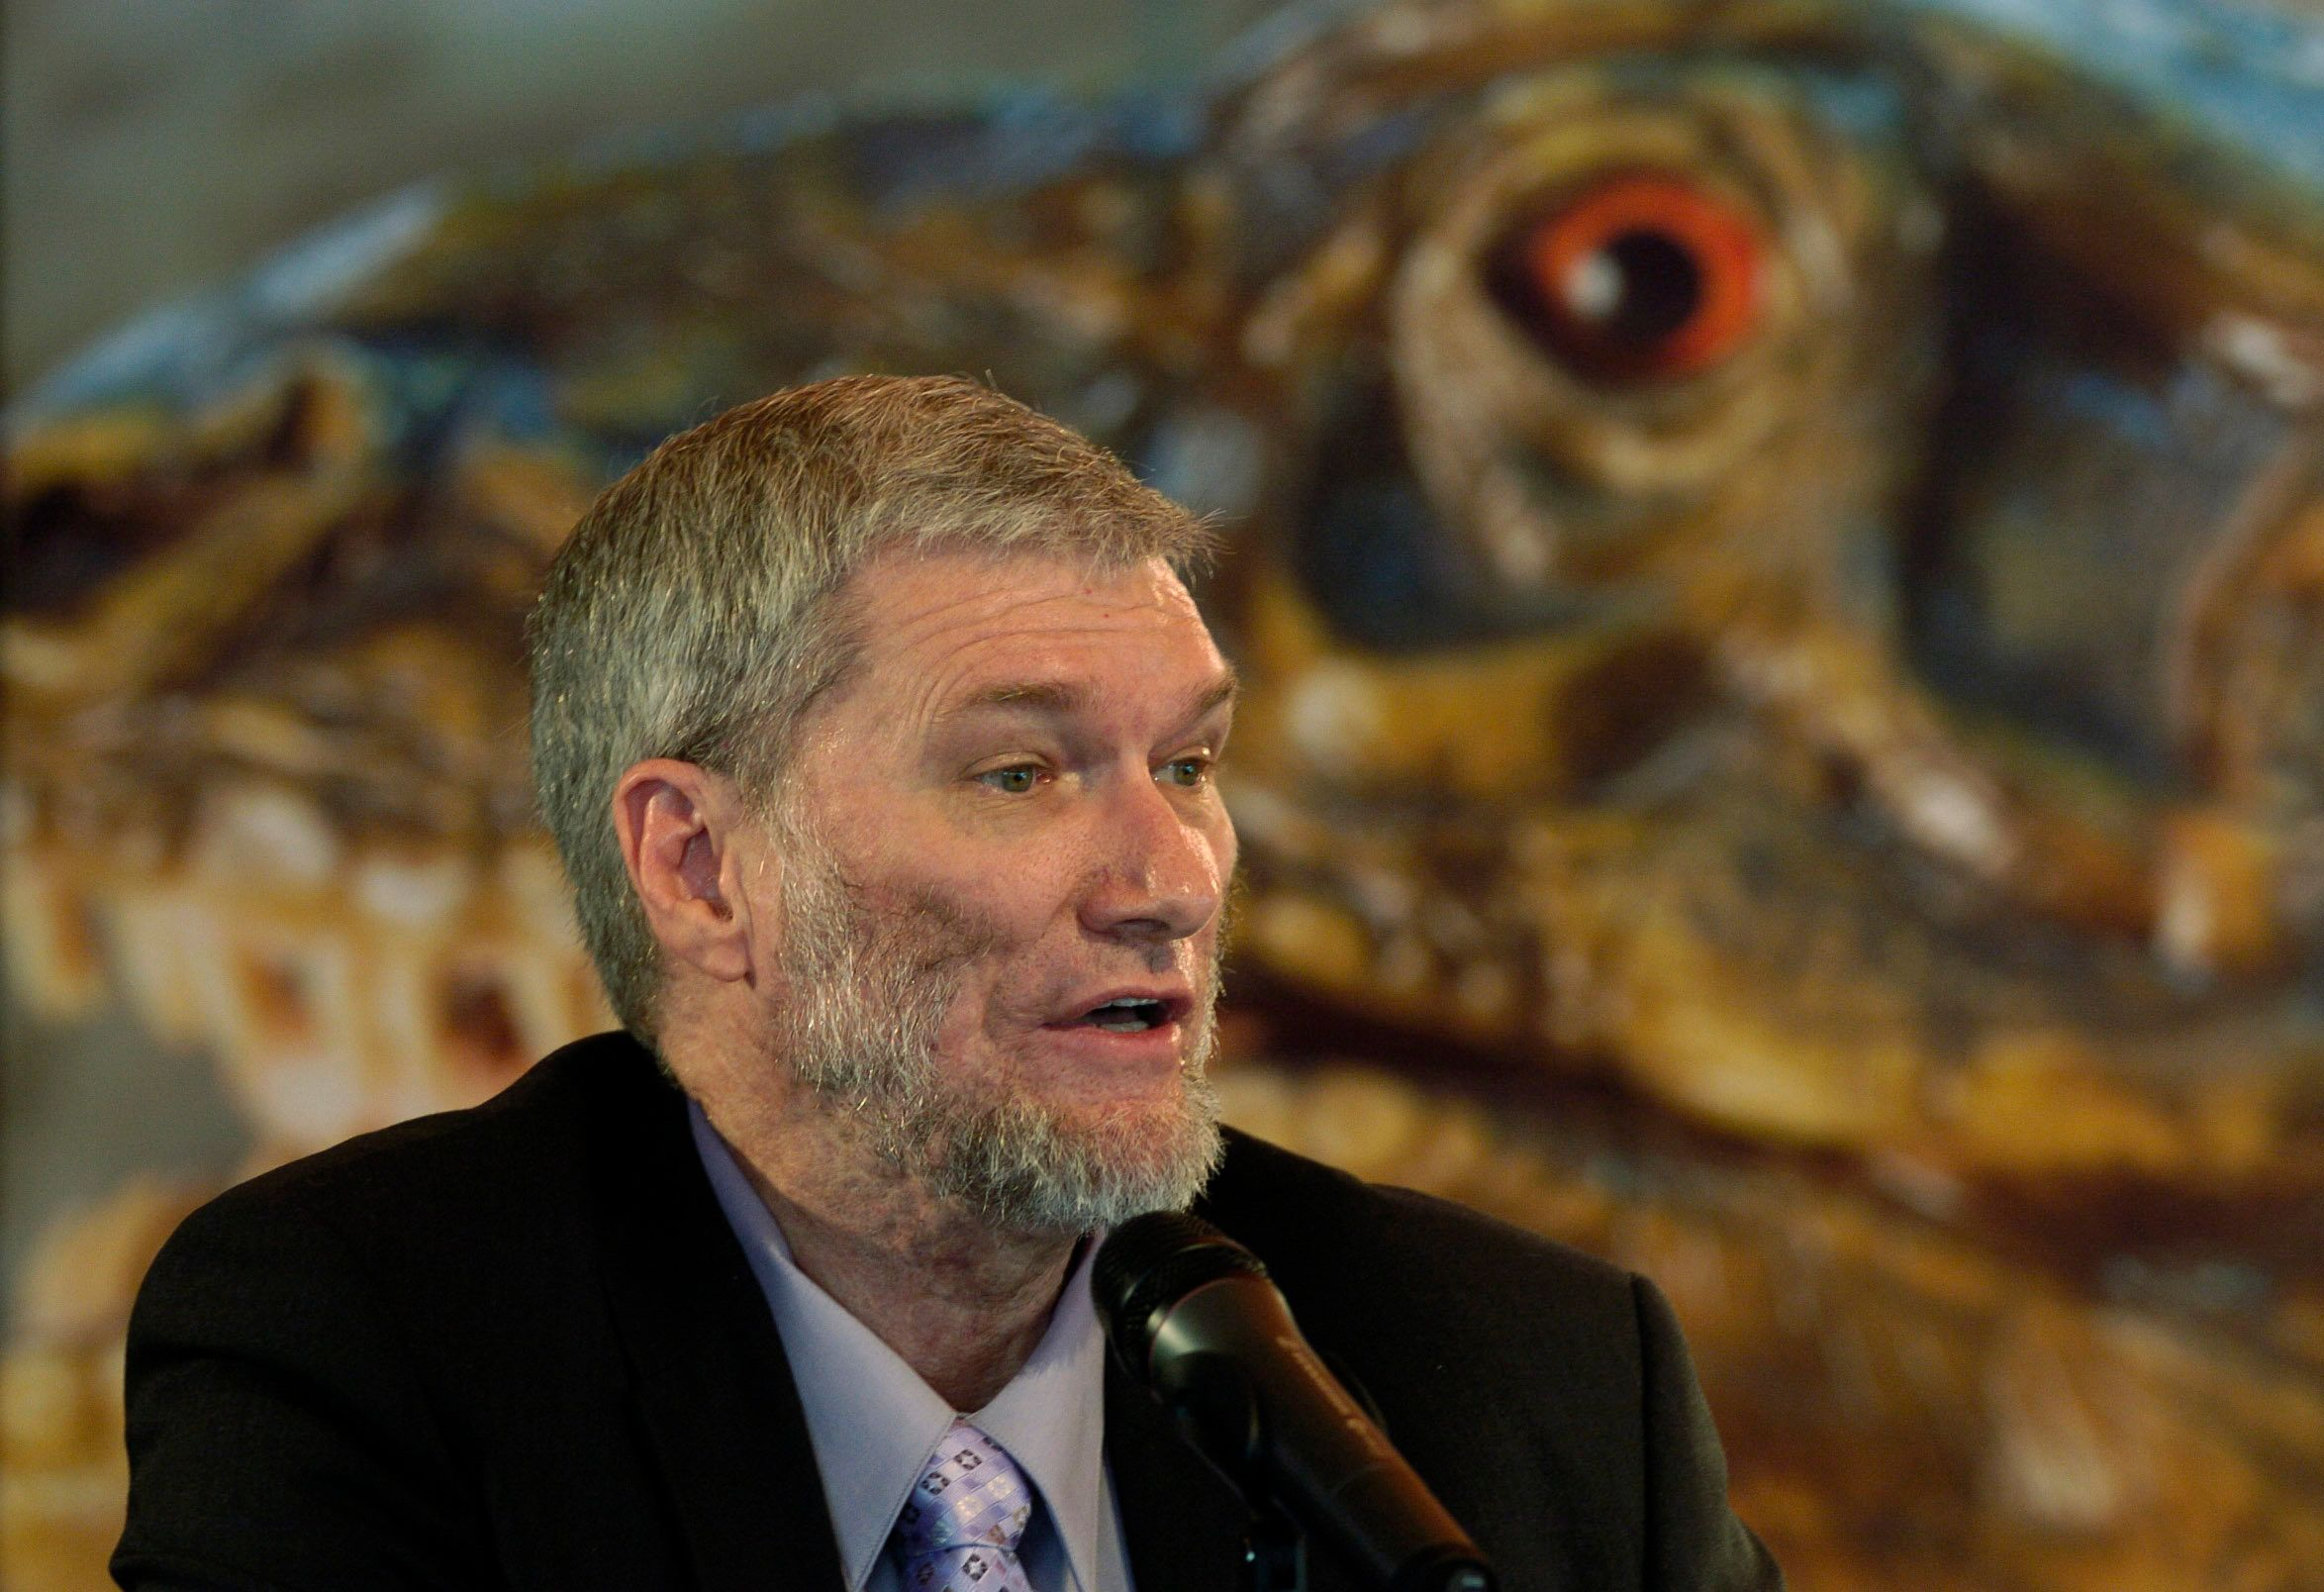 Creationist Ken Ham believes some dinosaurs sailed on Noah's Ark to survive the flood depicted in the